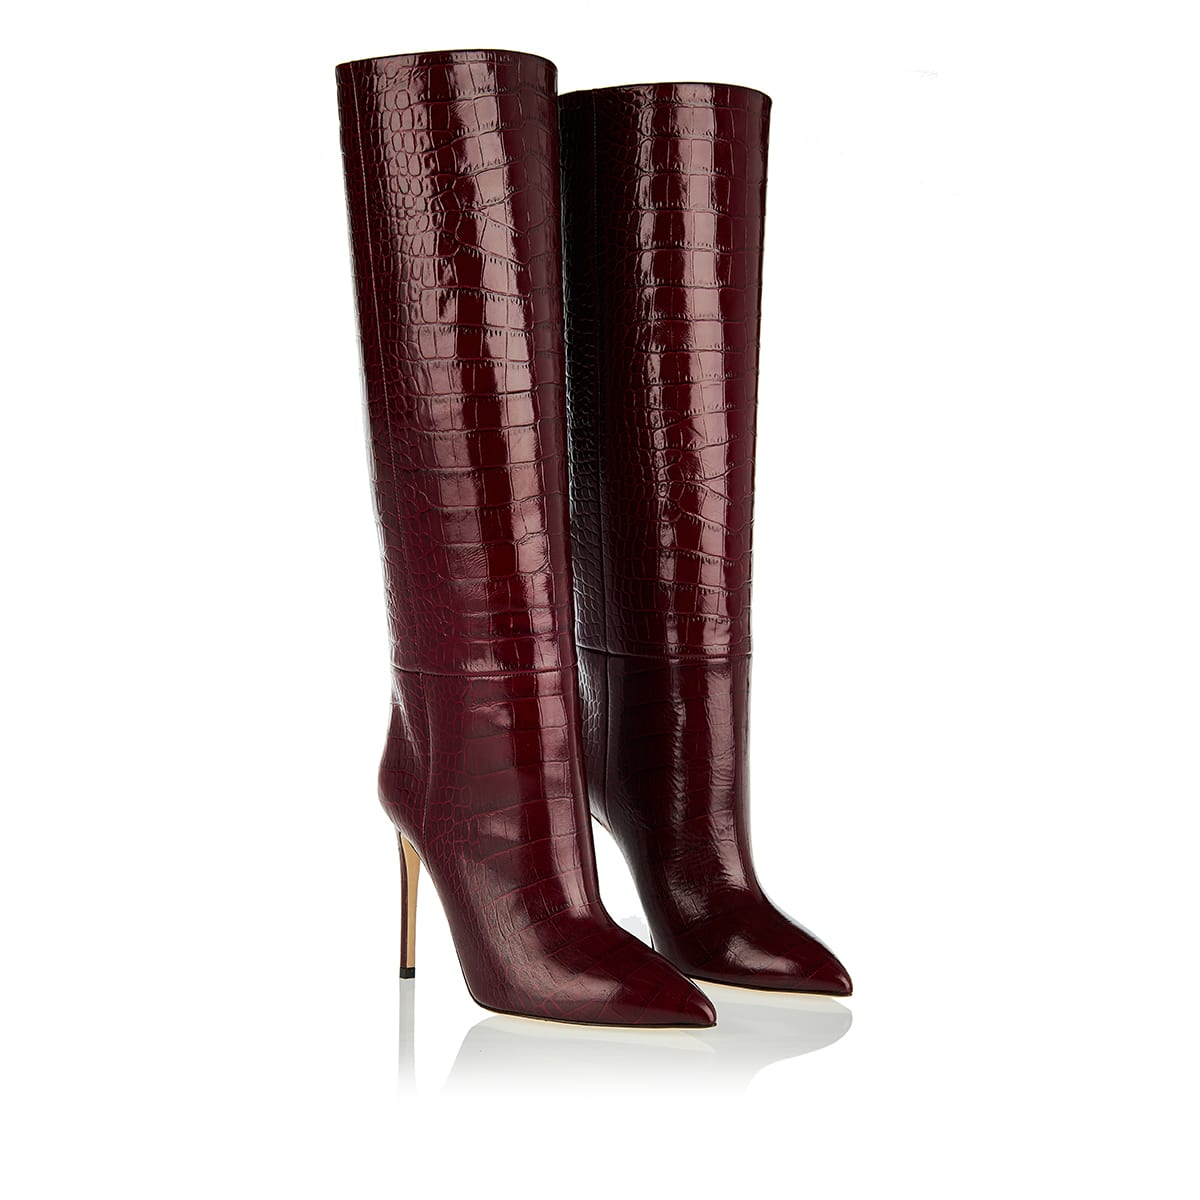 Croc-effect knee-high leather boots